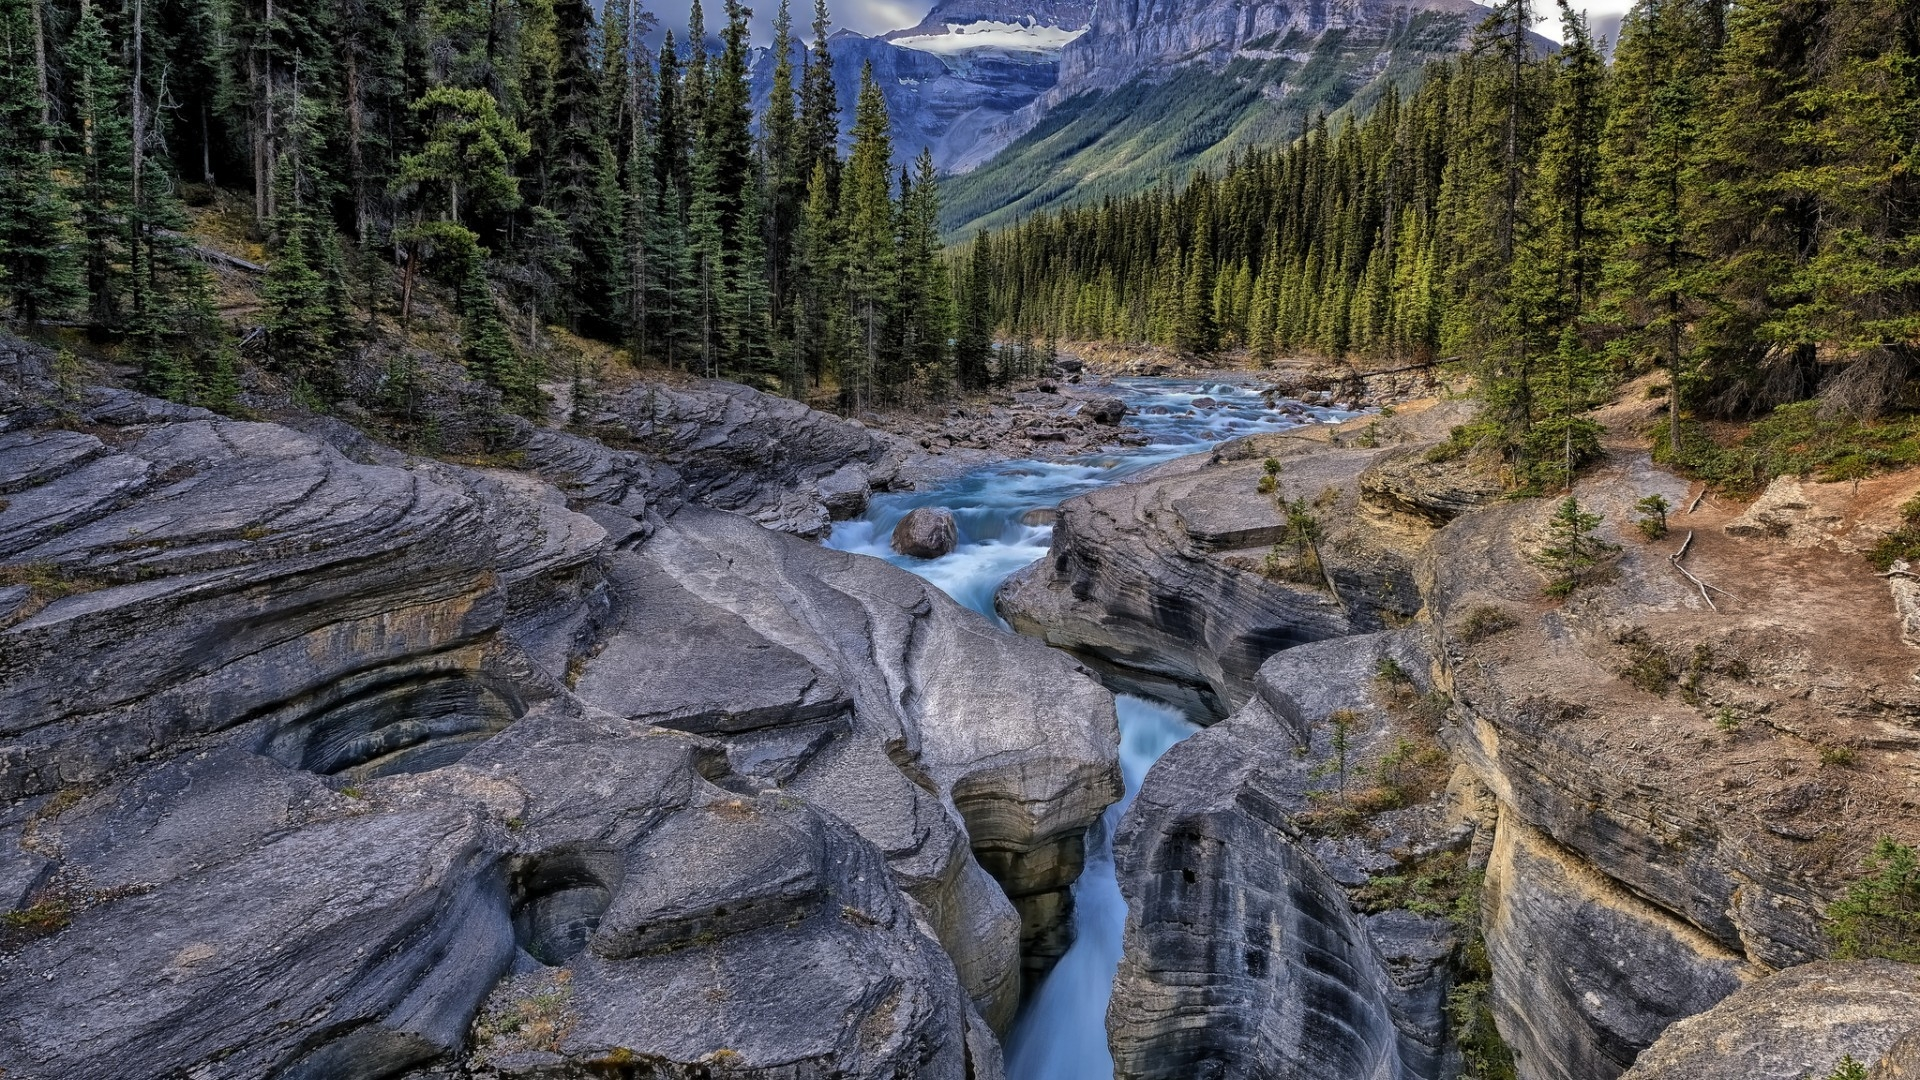 A river through the rocks in the mountains